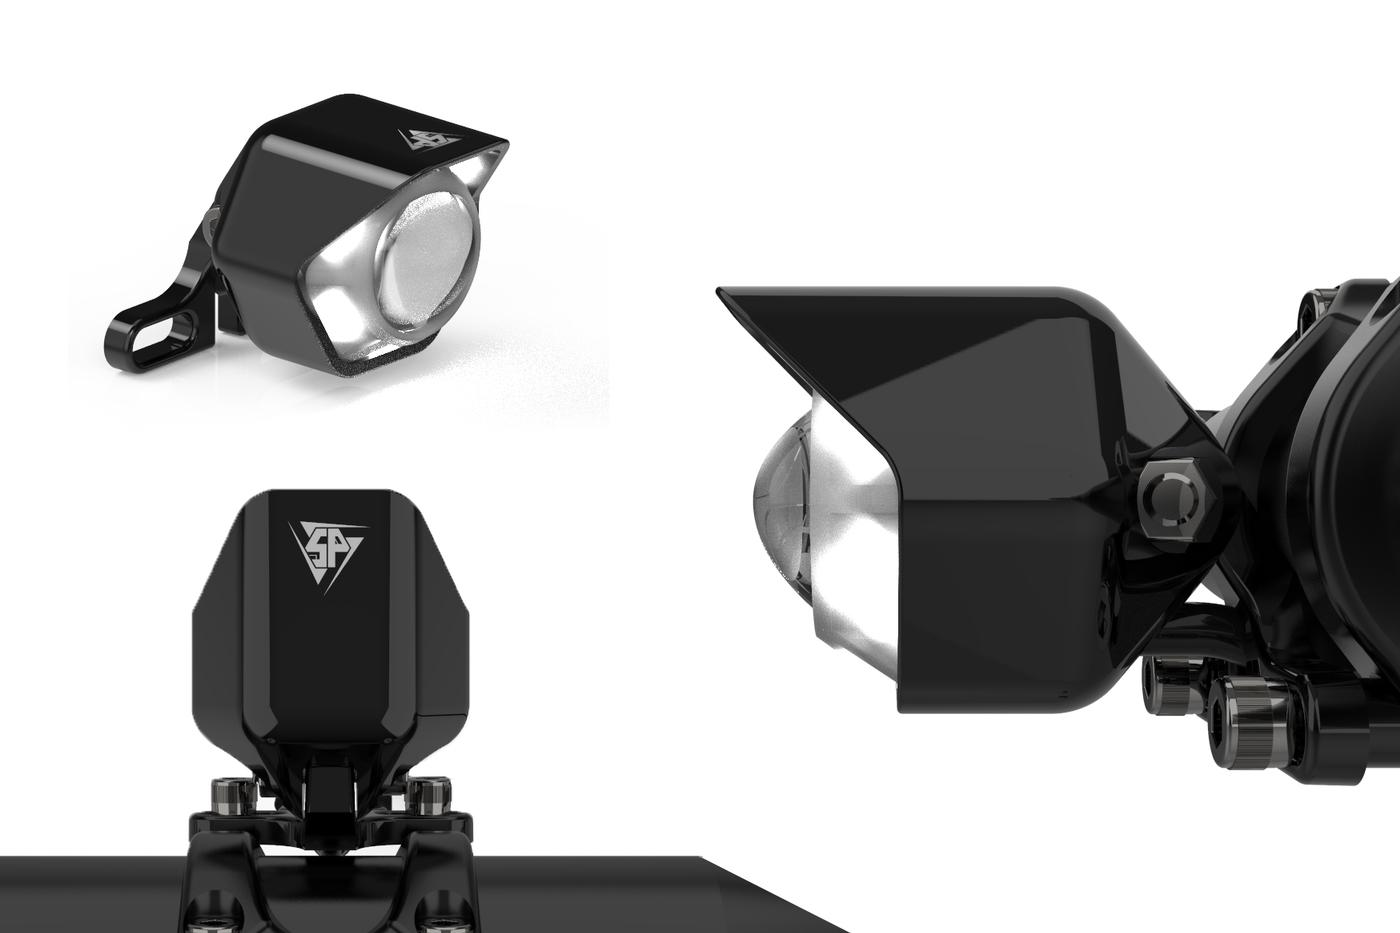 Shutter Precision's New DS-4 Mounts Directly to Your Stem's Faceplate